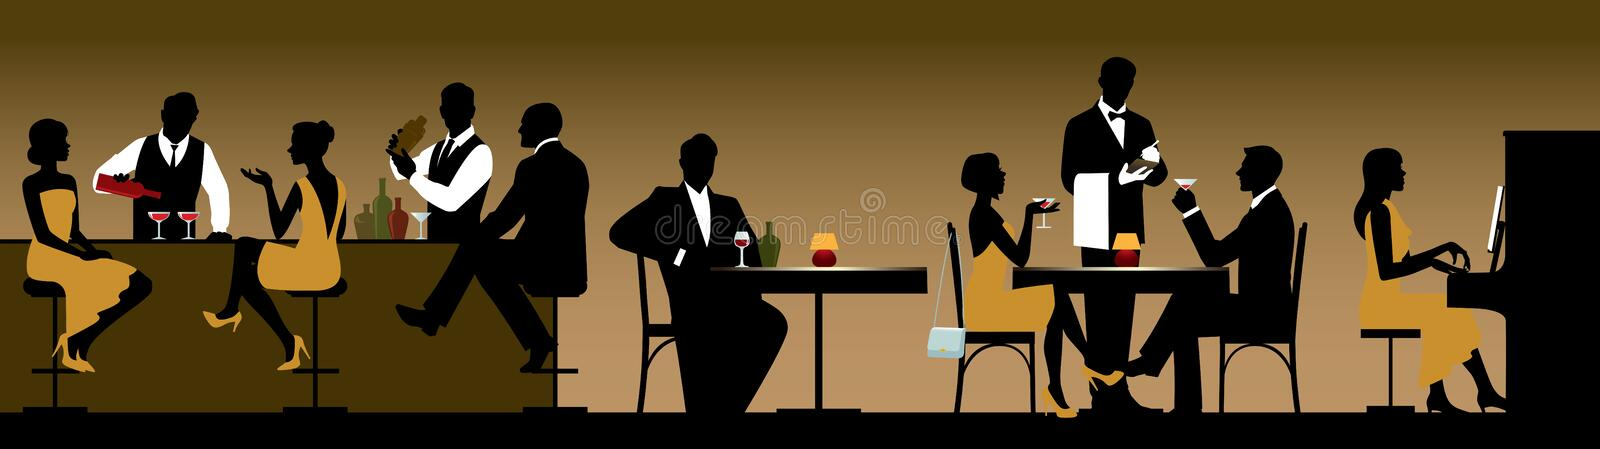 Silhouettes of a group of people holiday makers in a restaurant stock illustration